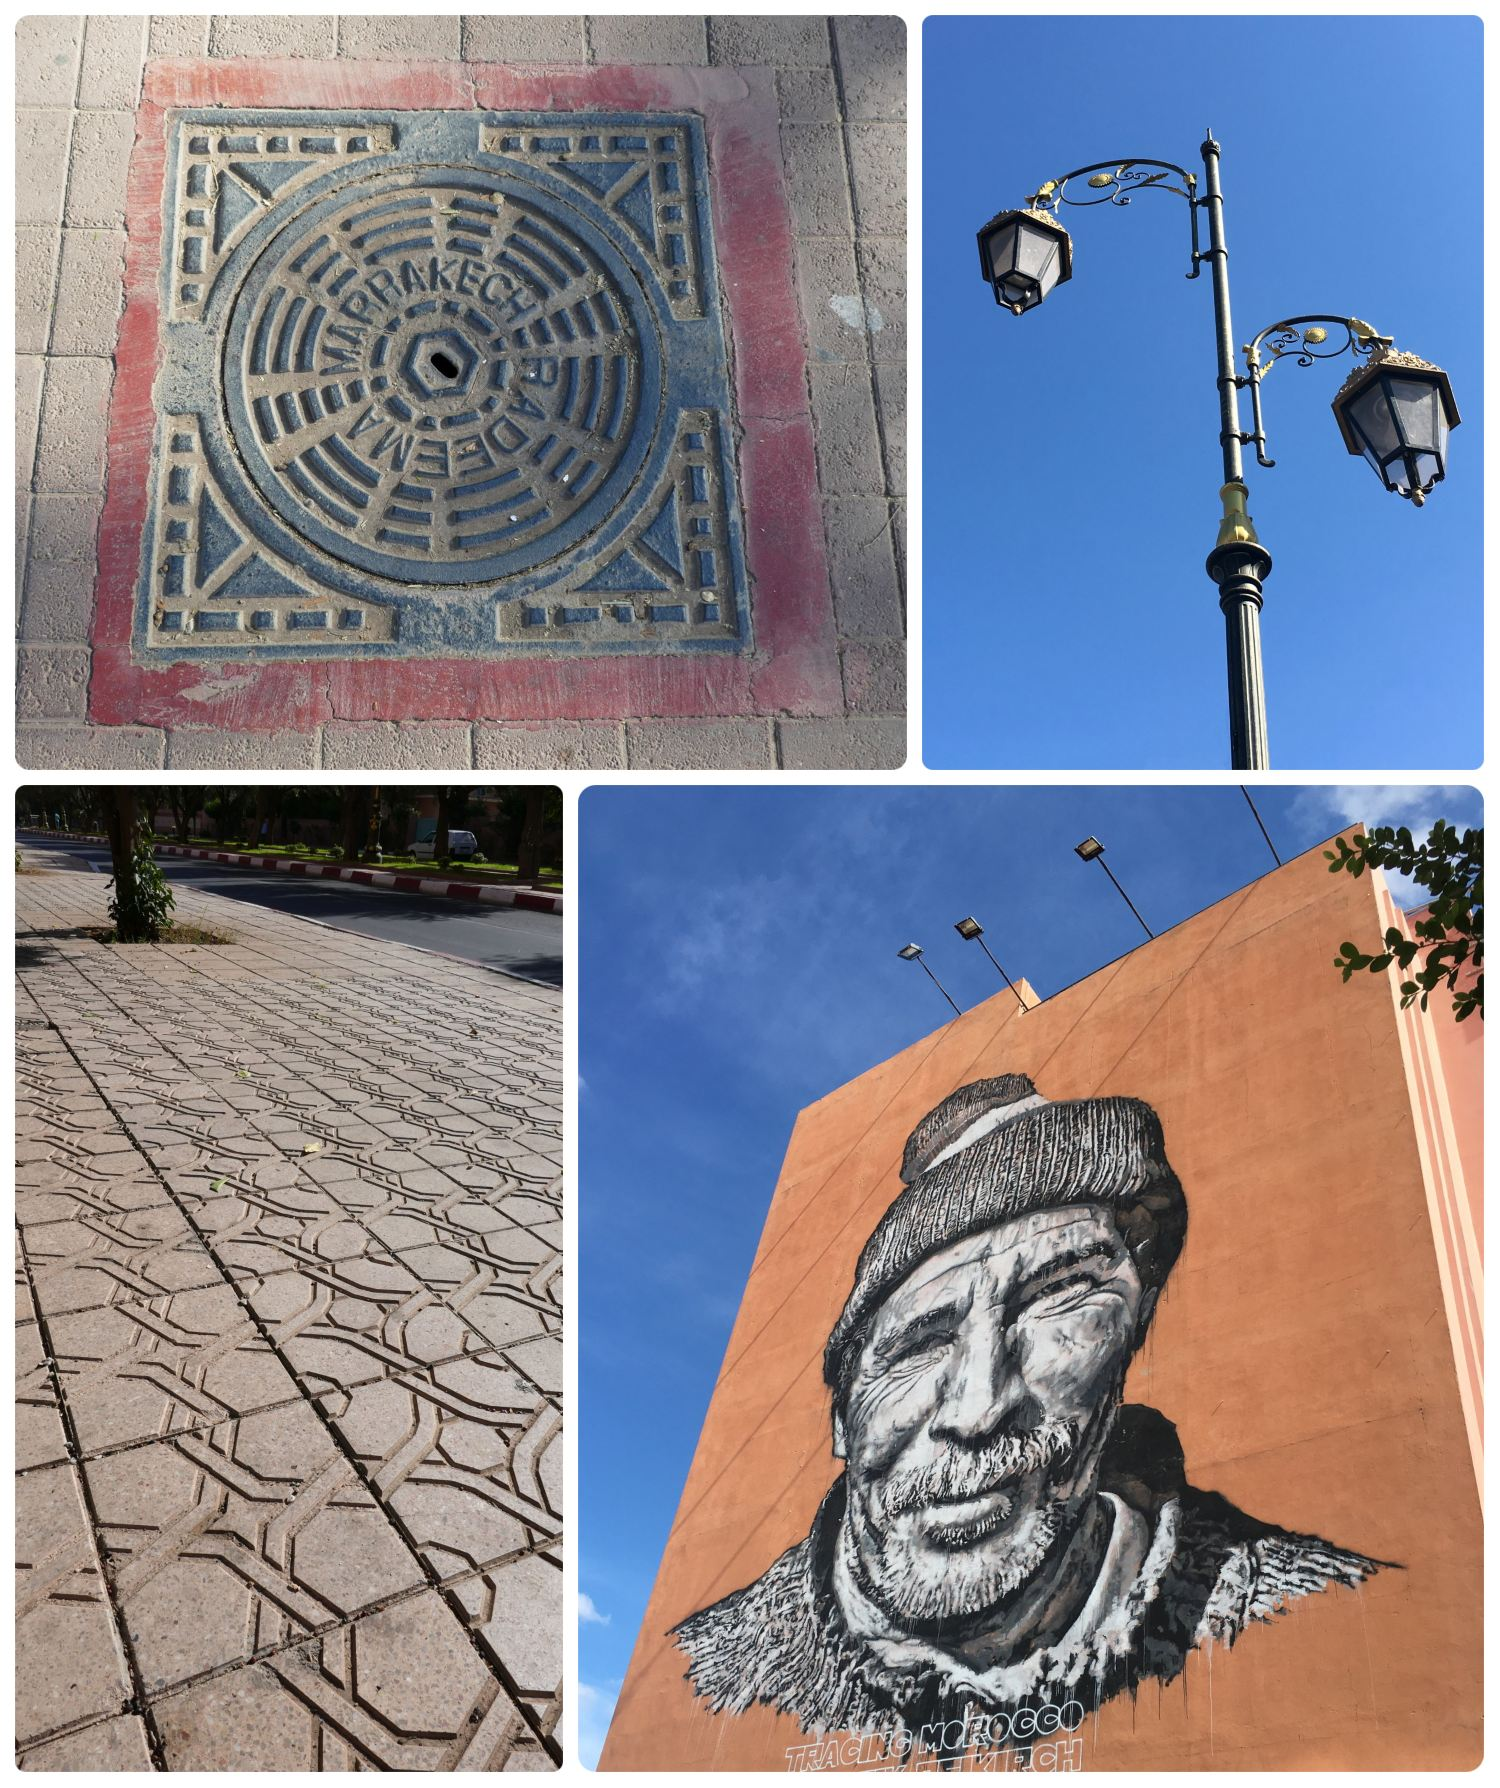 Marrakech, Morocco is a city that's designed with intricate details, from the murals to the sidewalks and street lamps!